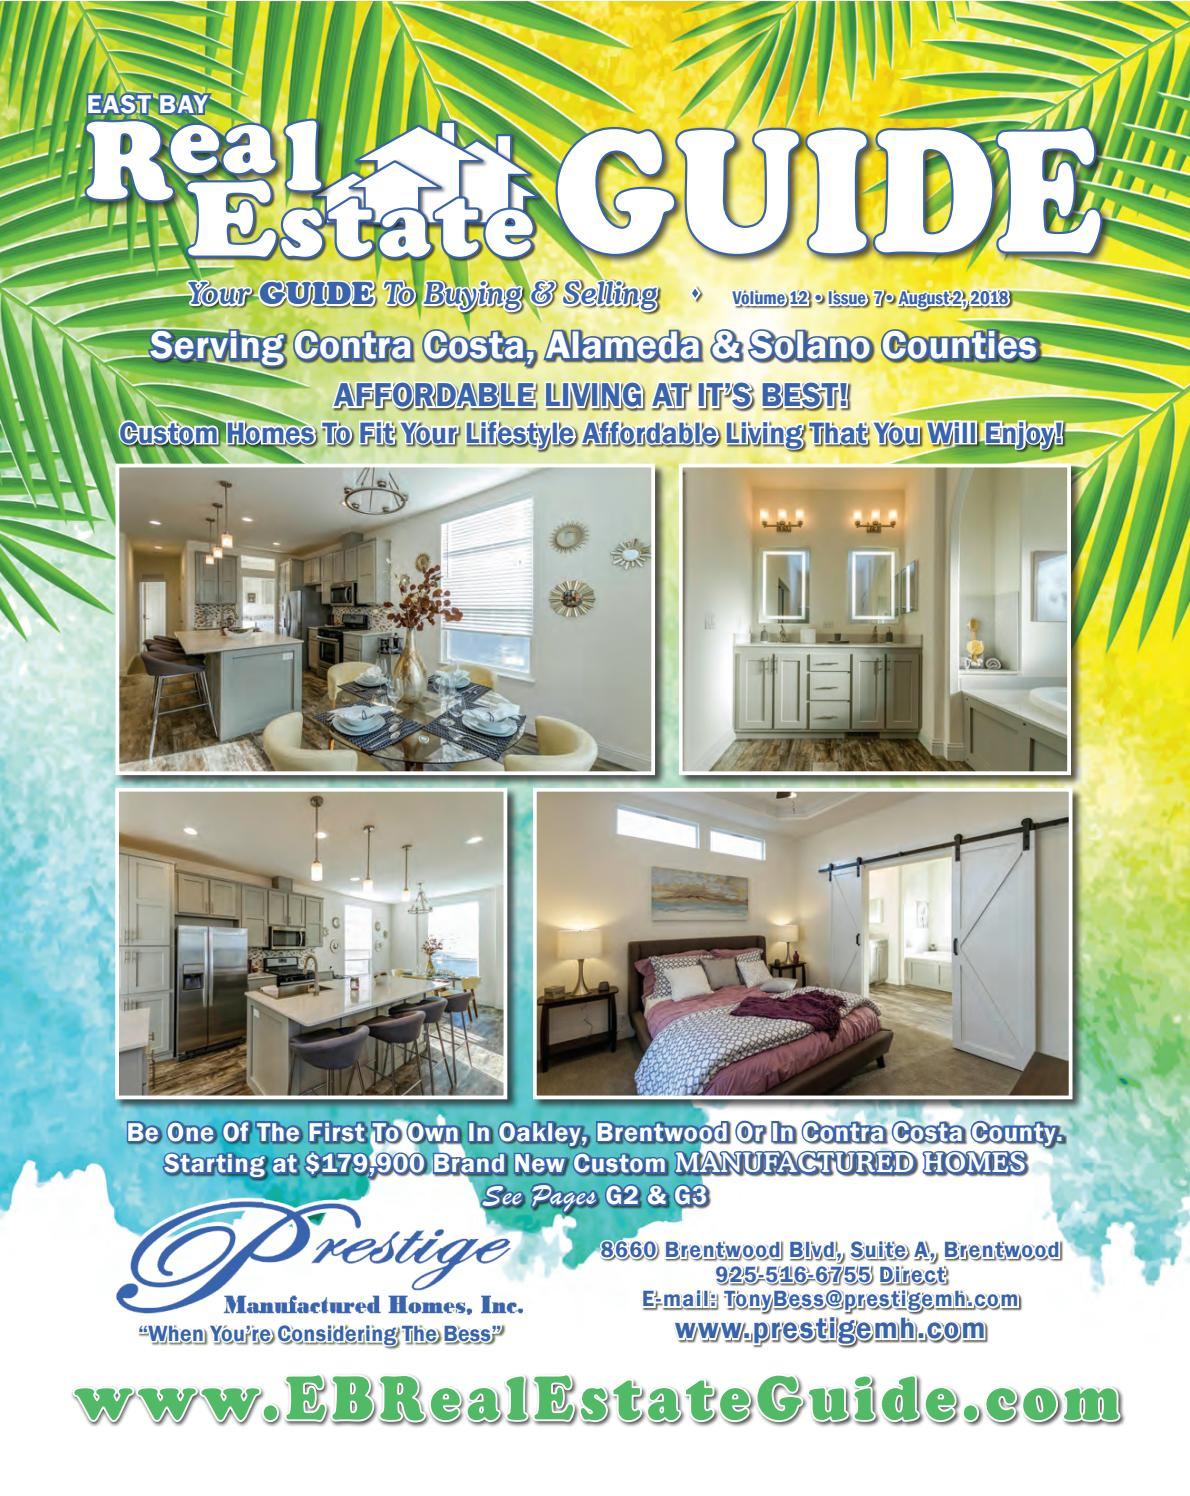 East Bay Real Estate Guide Volume 12 Issue 7 by East Bay Real Estate A Sandalwood Manufactured Home Remodeling on remodeling a rv, remodeling a house, remodeling a boat, small bathroom remodeling mobile home,